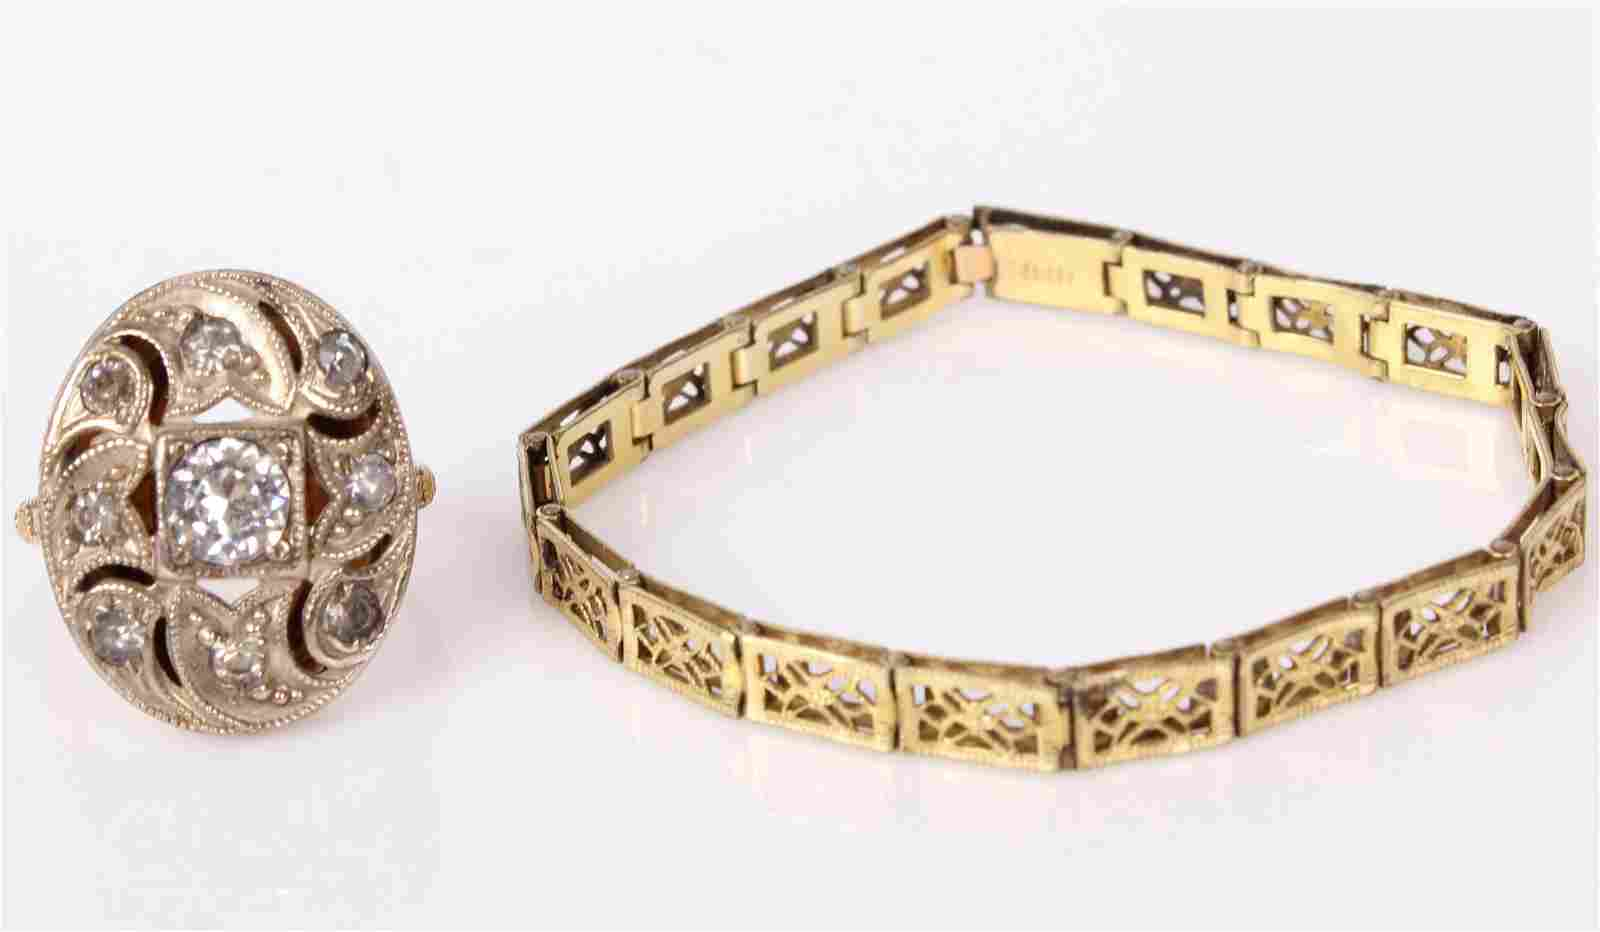 VICTORIAN 10K GOLD FILLED RING AND 9K HFB BRACELET